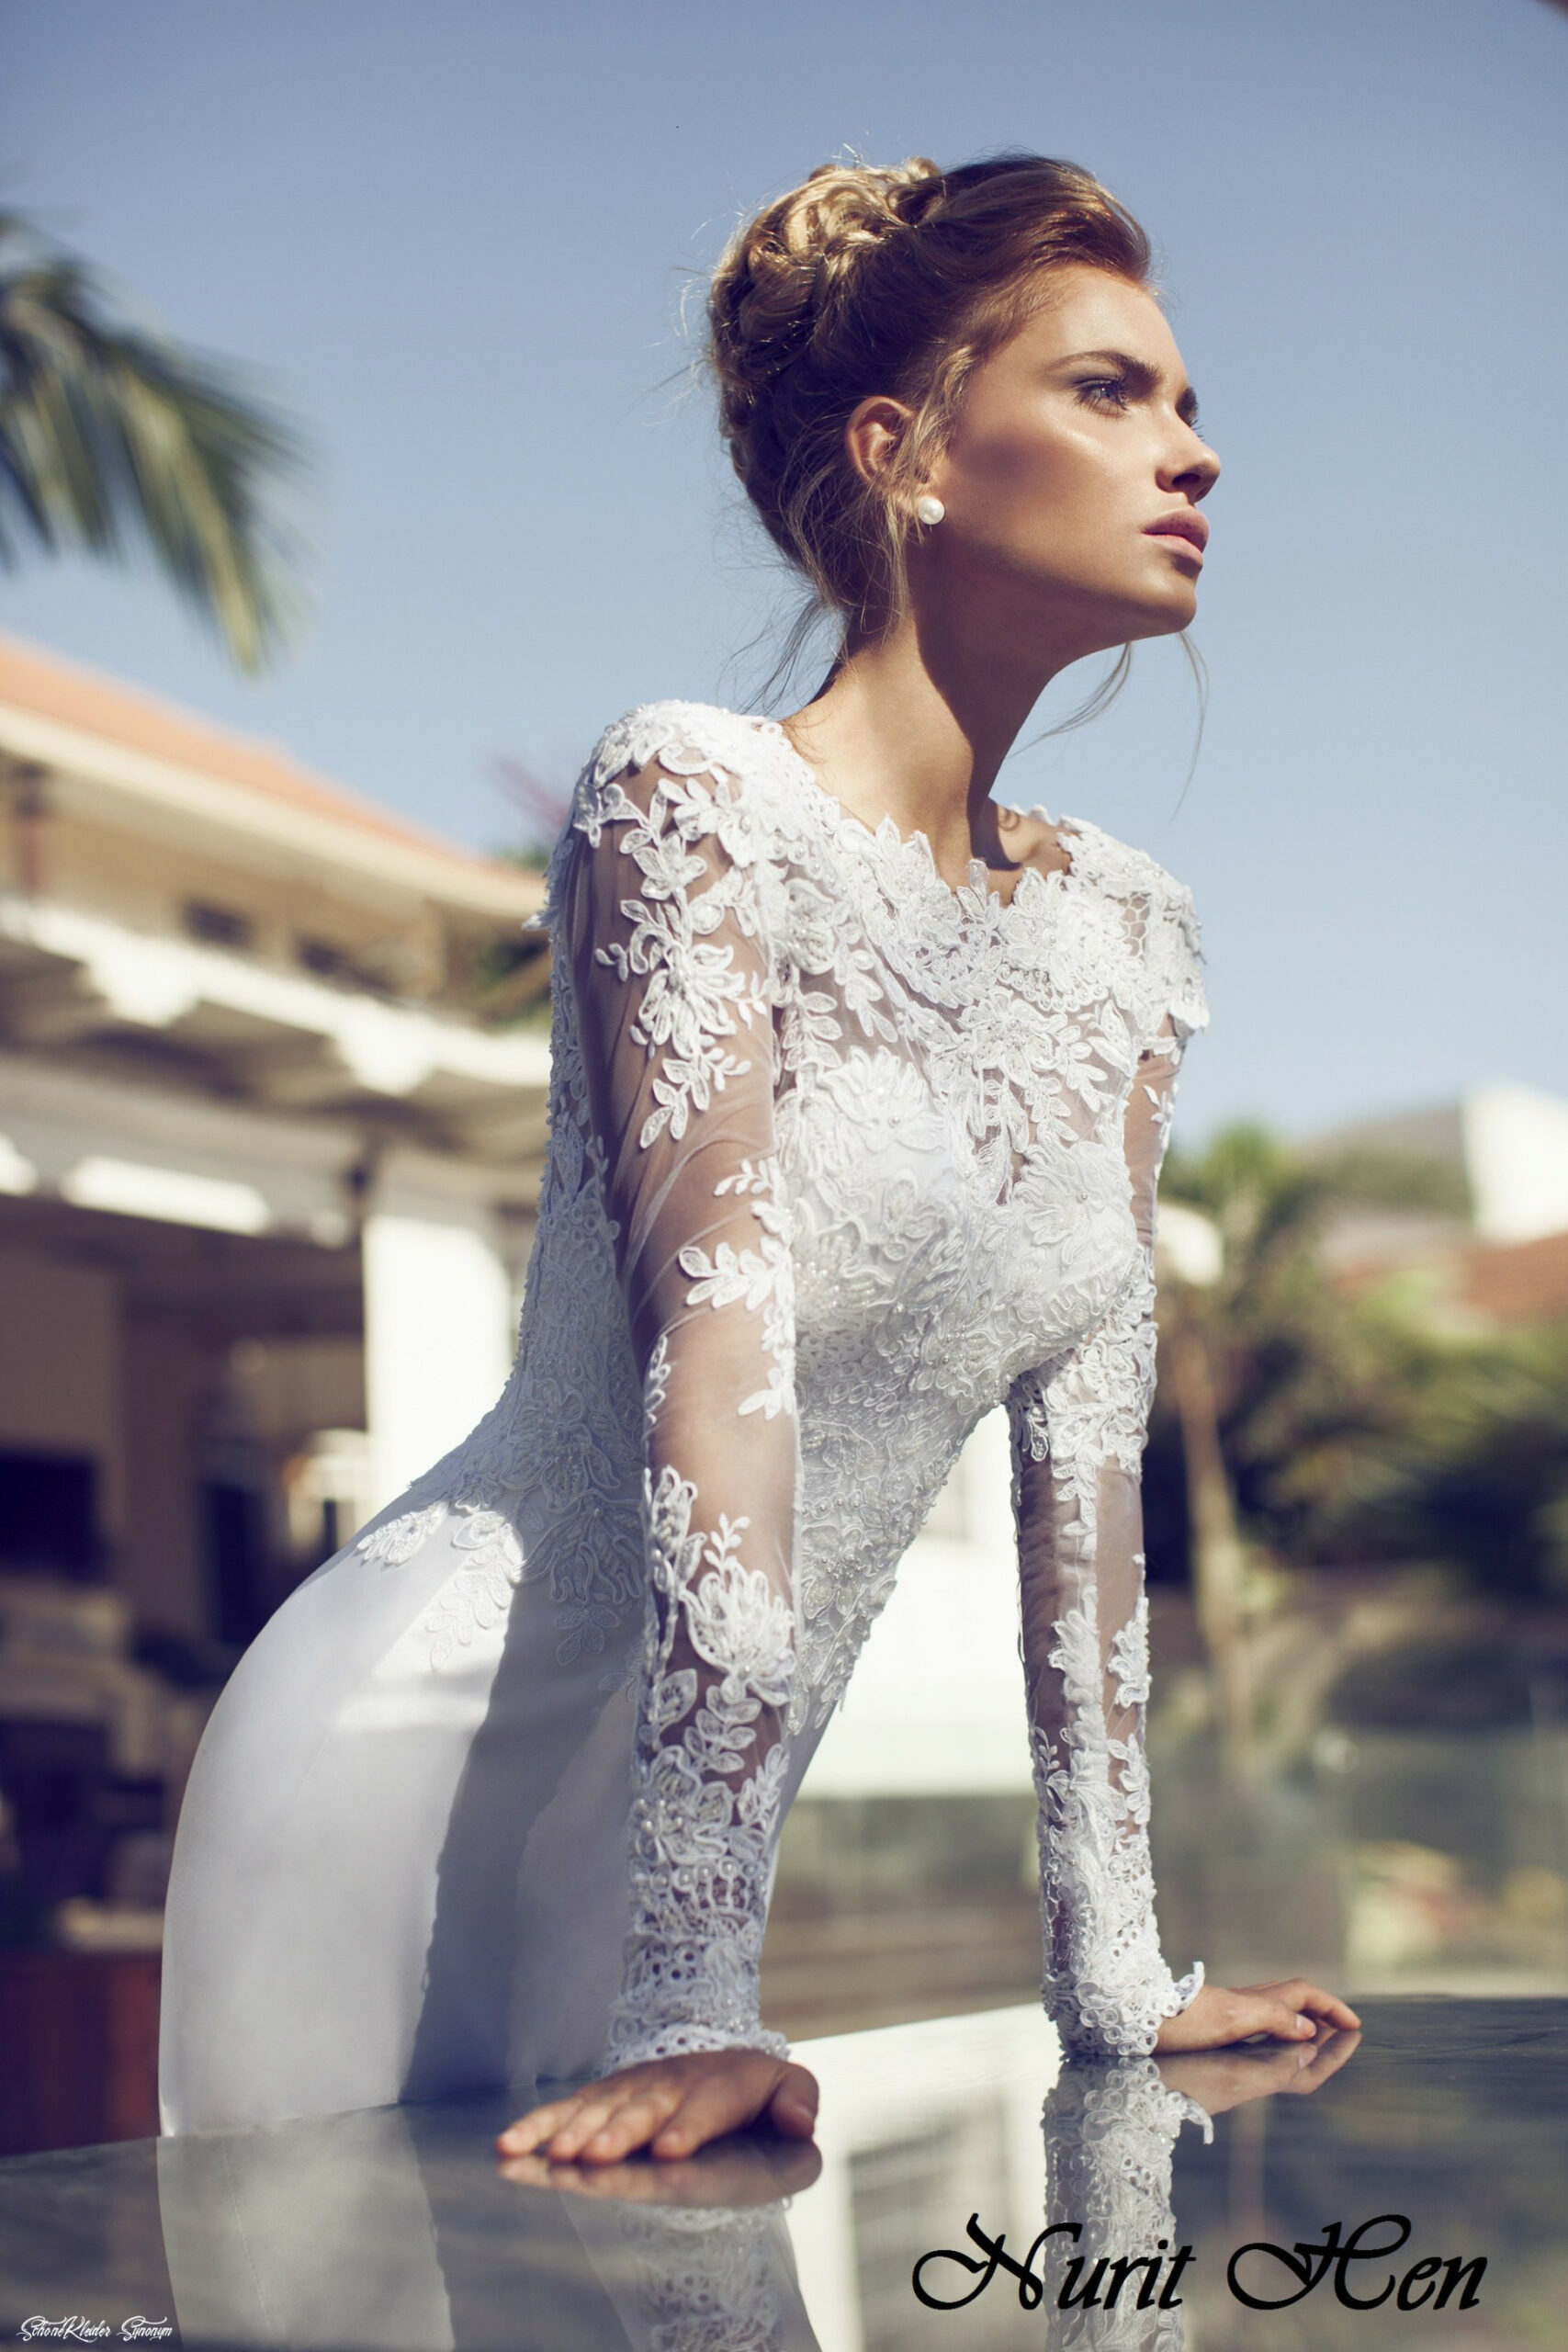 Nurit Hen 12 Wedding Gown Elad@nurit Hen Co Il Www Nurit Hen